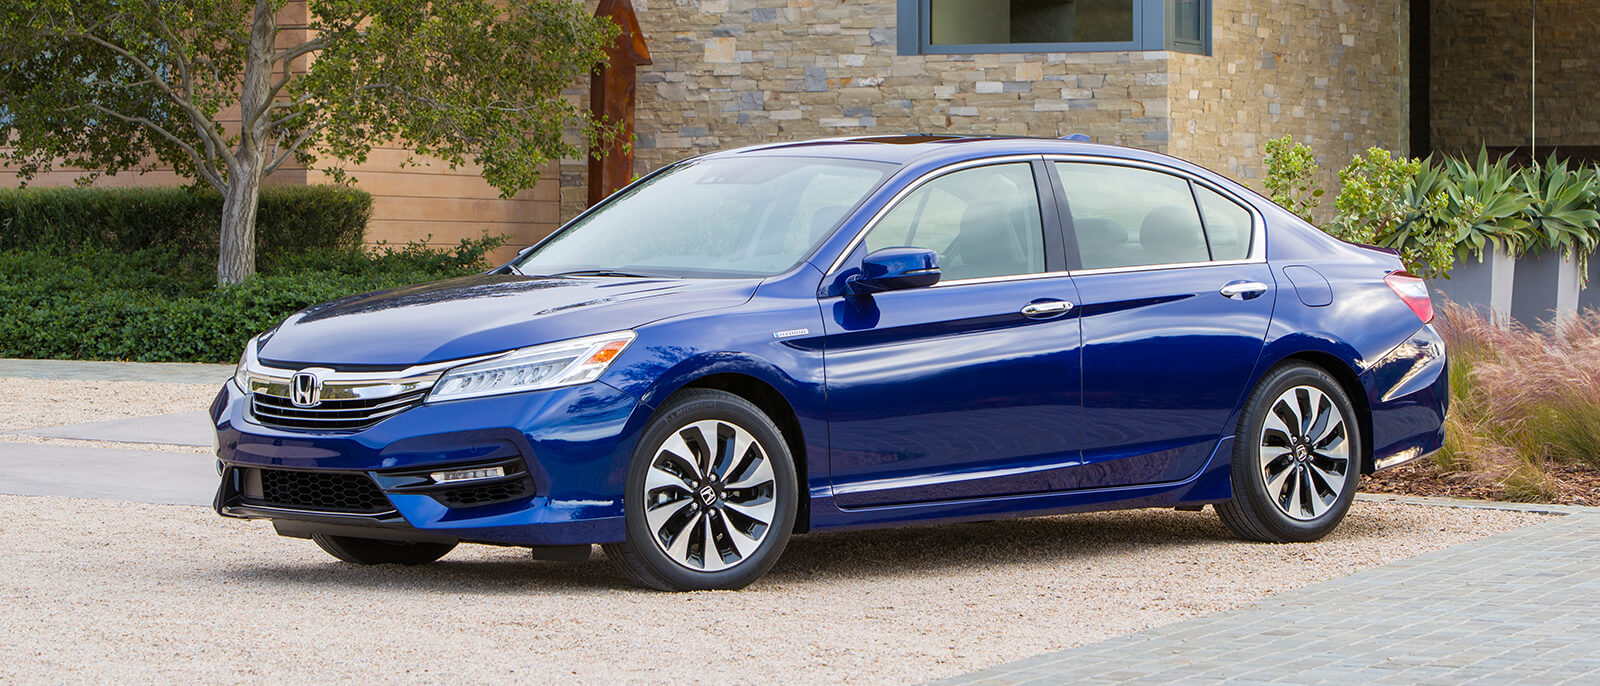 2017 Honda Accord Hybrid Blue